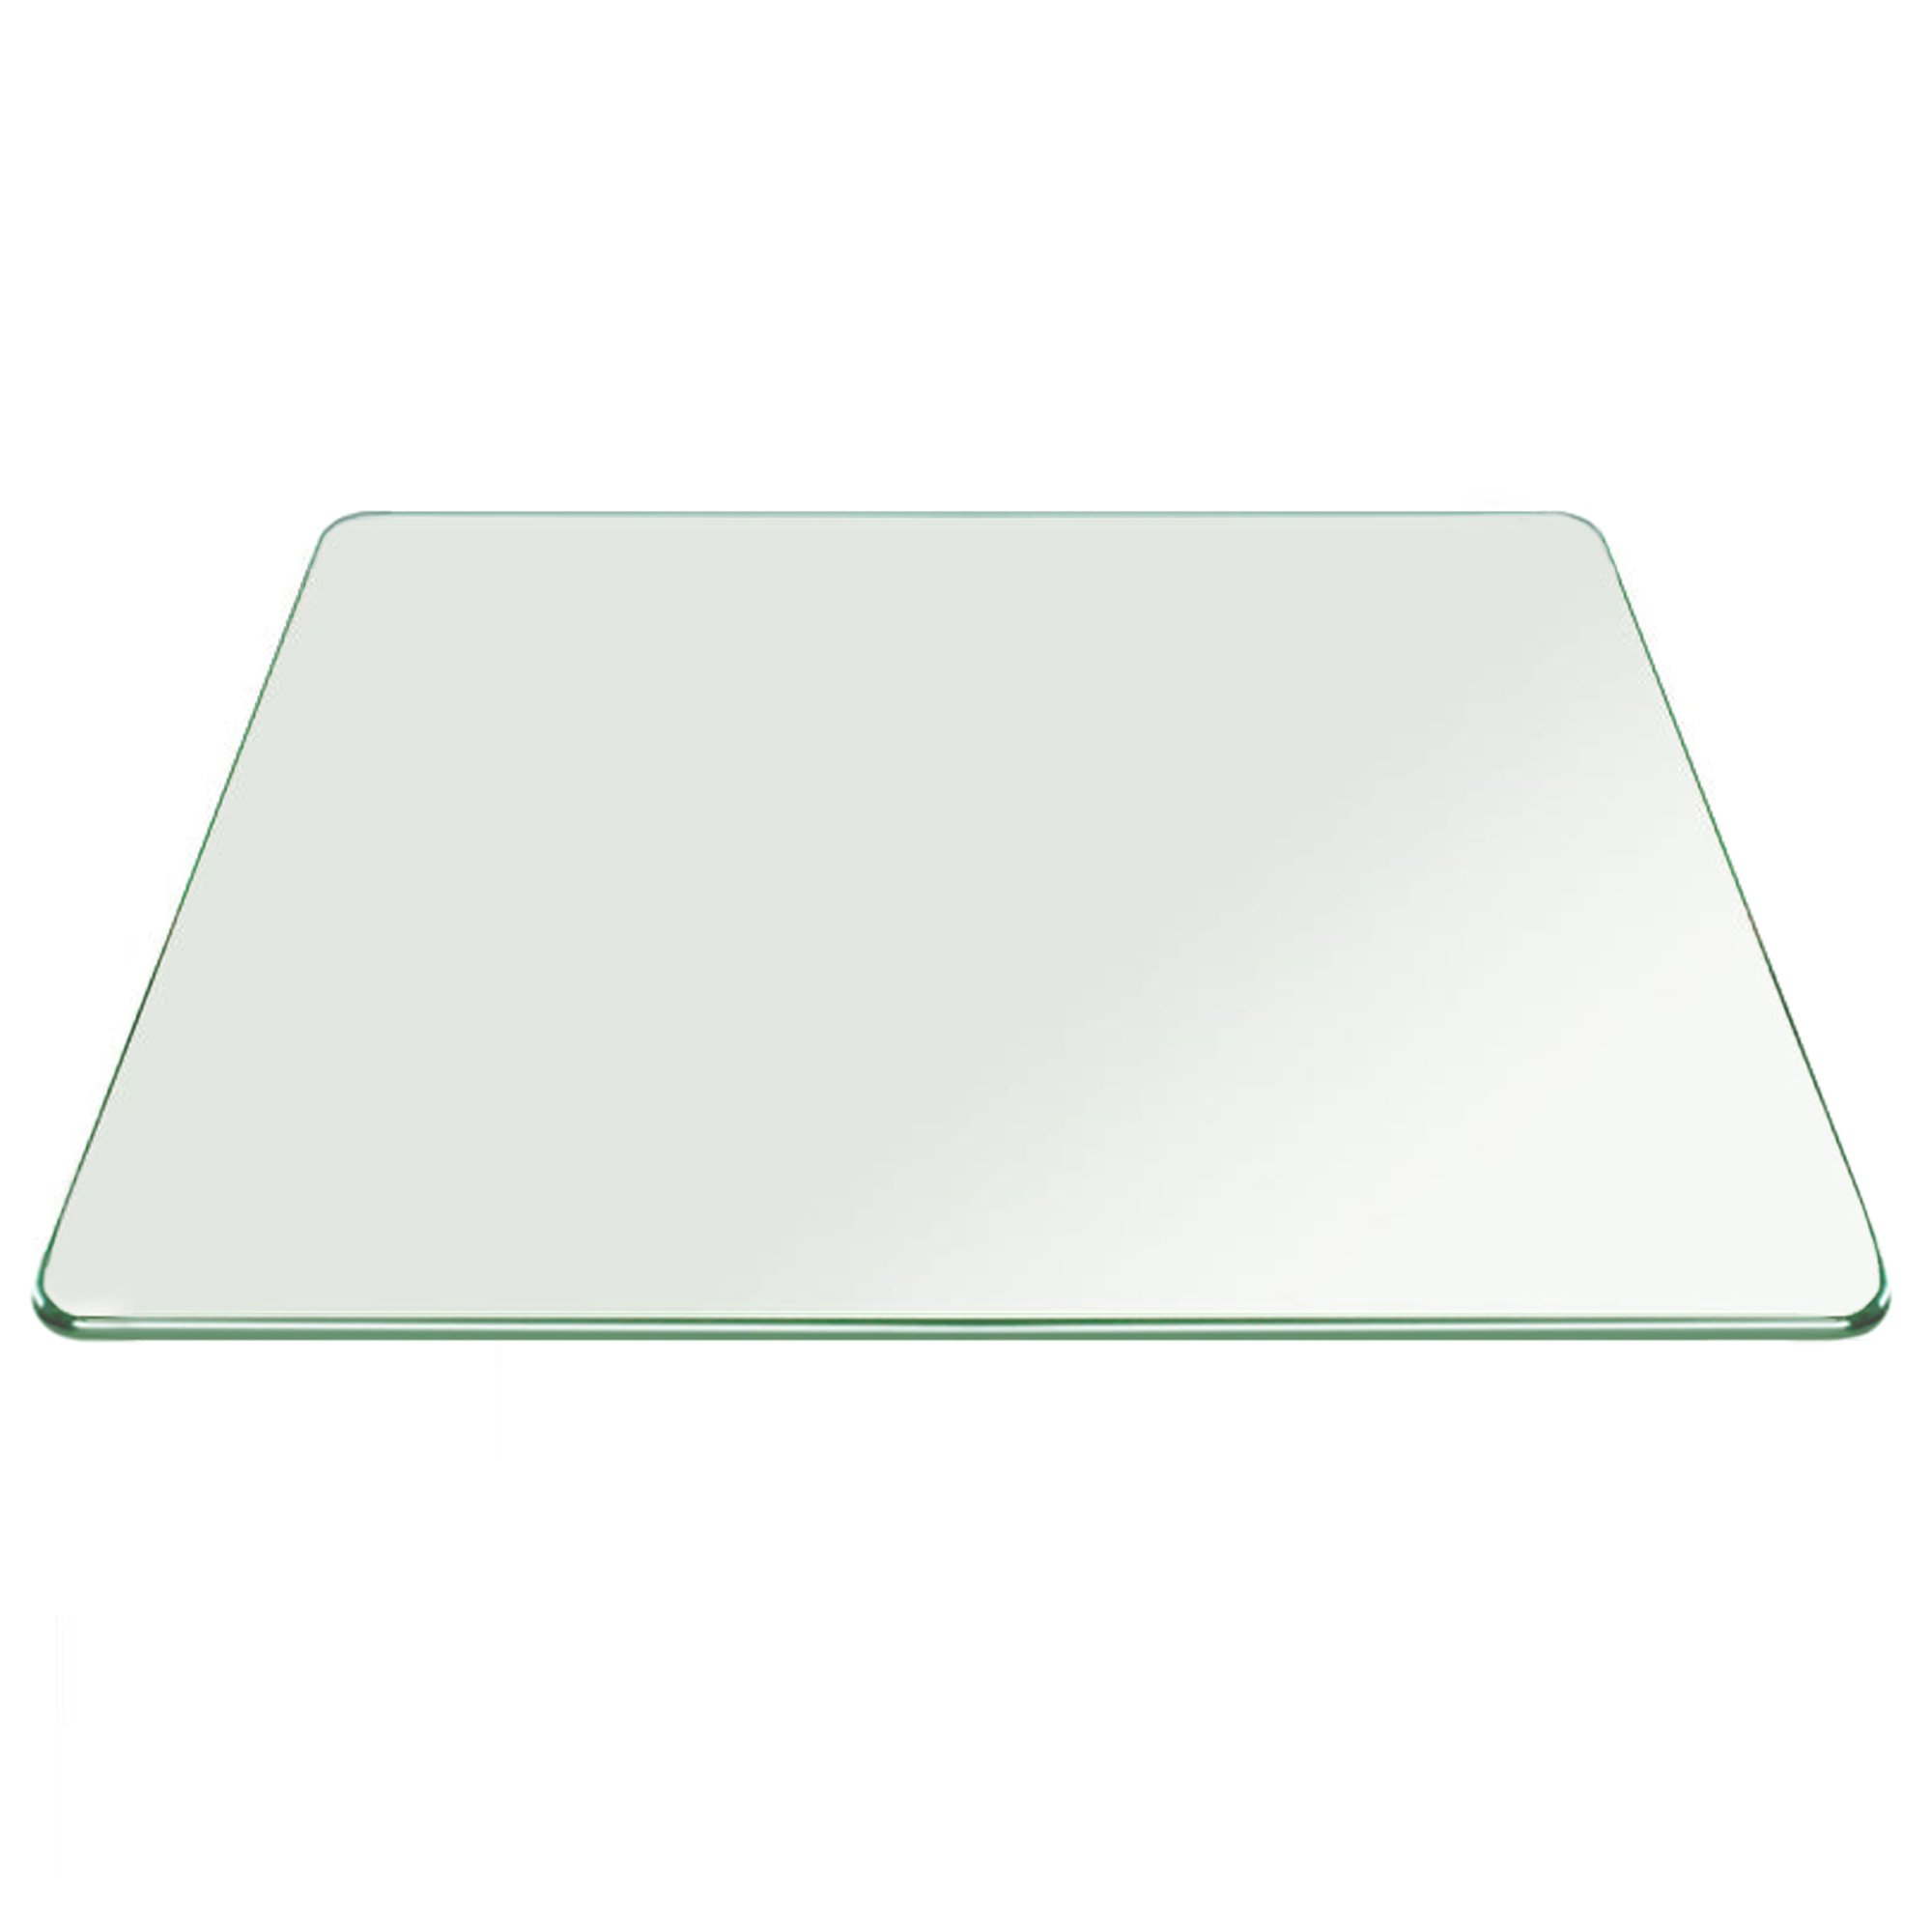 Fab Glass and Mirror 37SQR10THPETE Square Tempered Glass Table Top, 37'' Inch